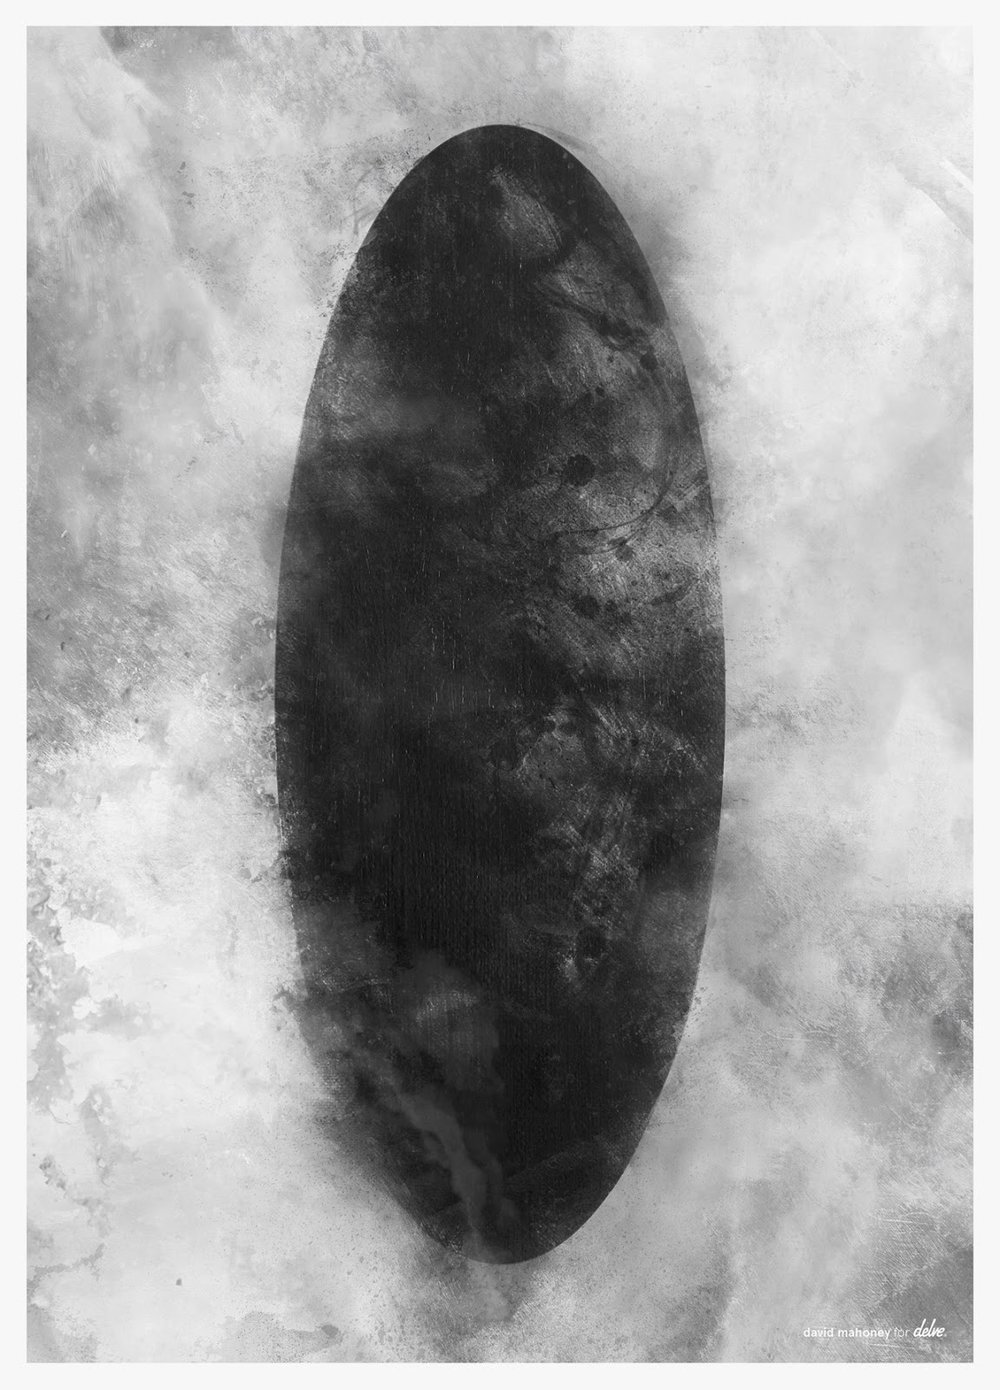 Arrival (Poster by David Mahoney)